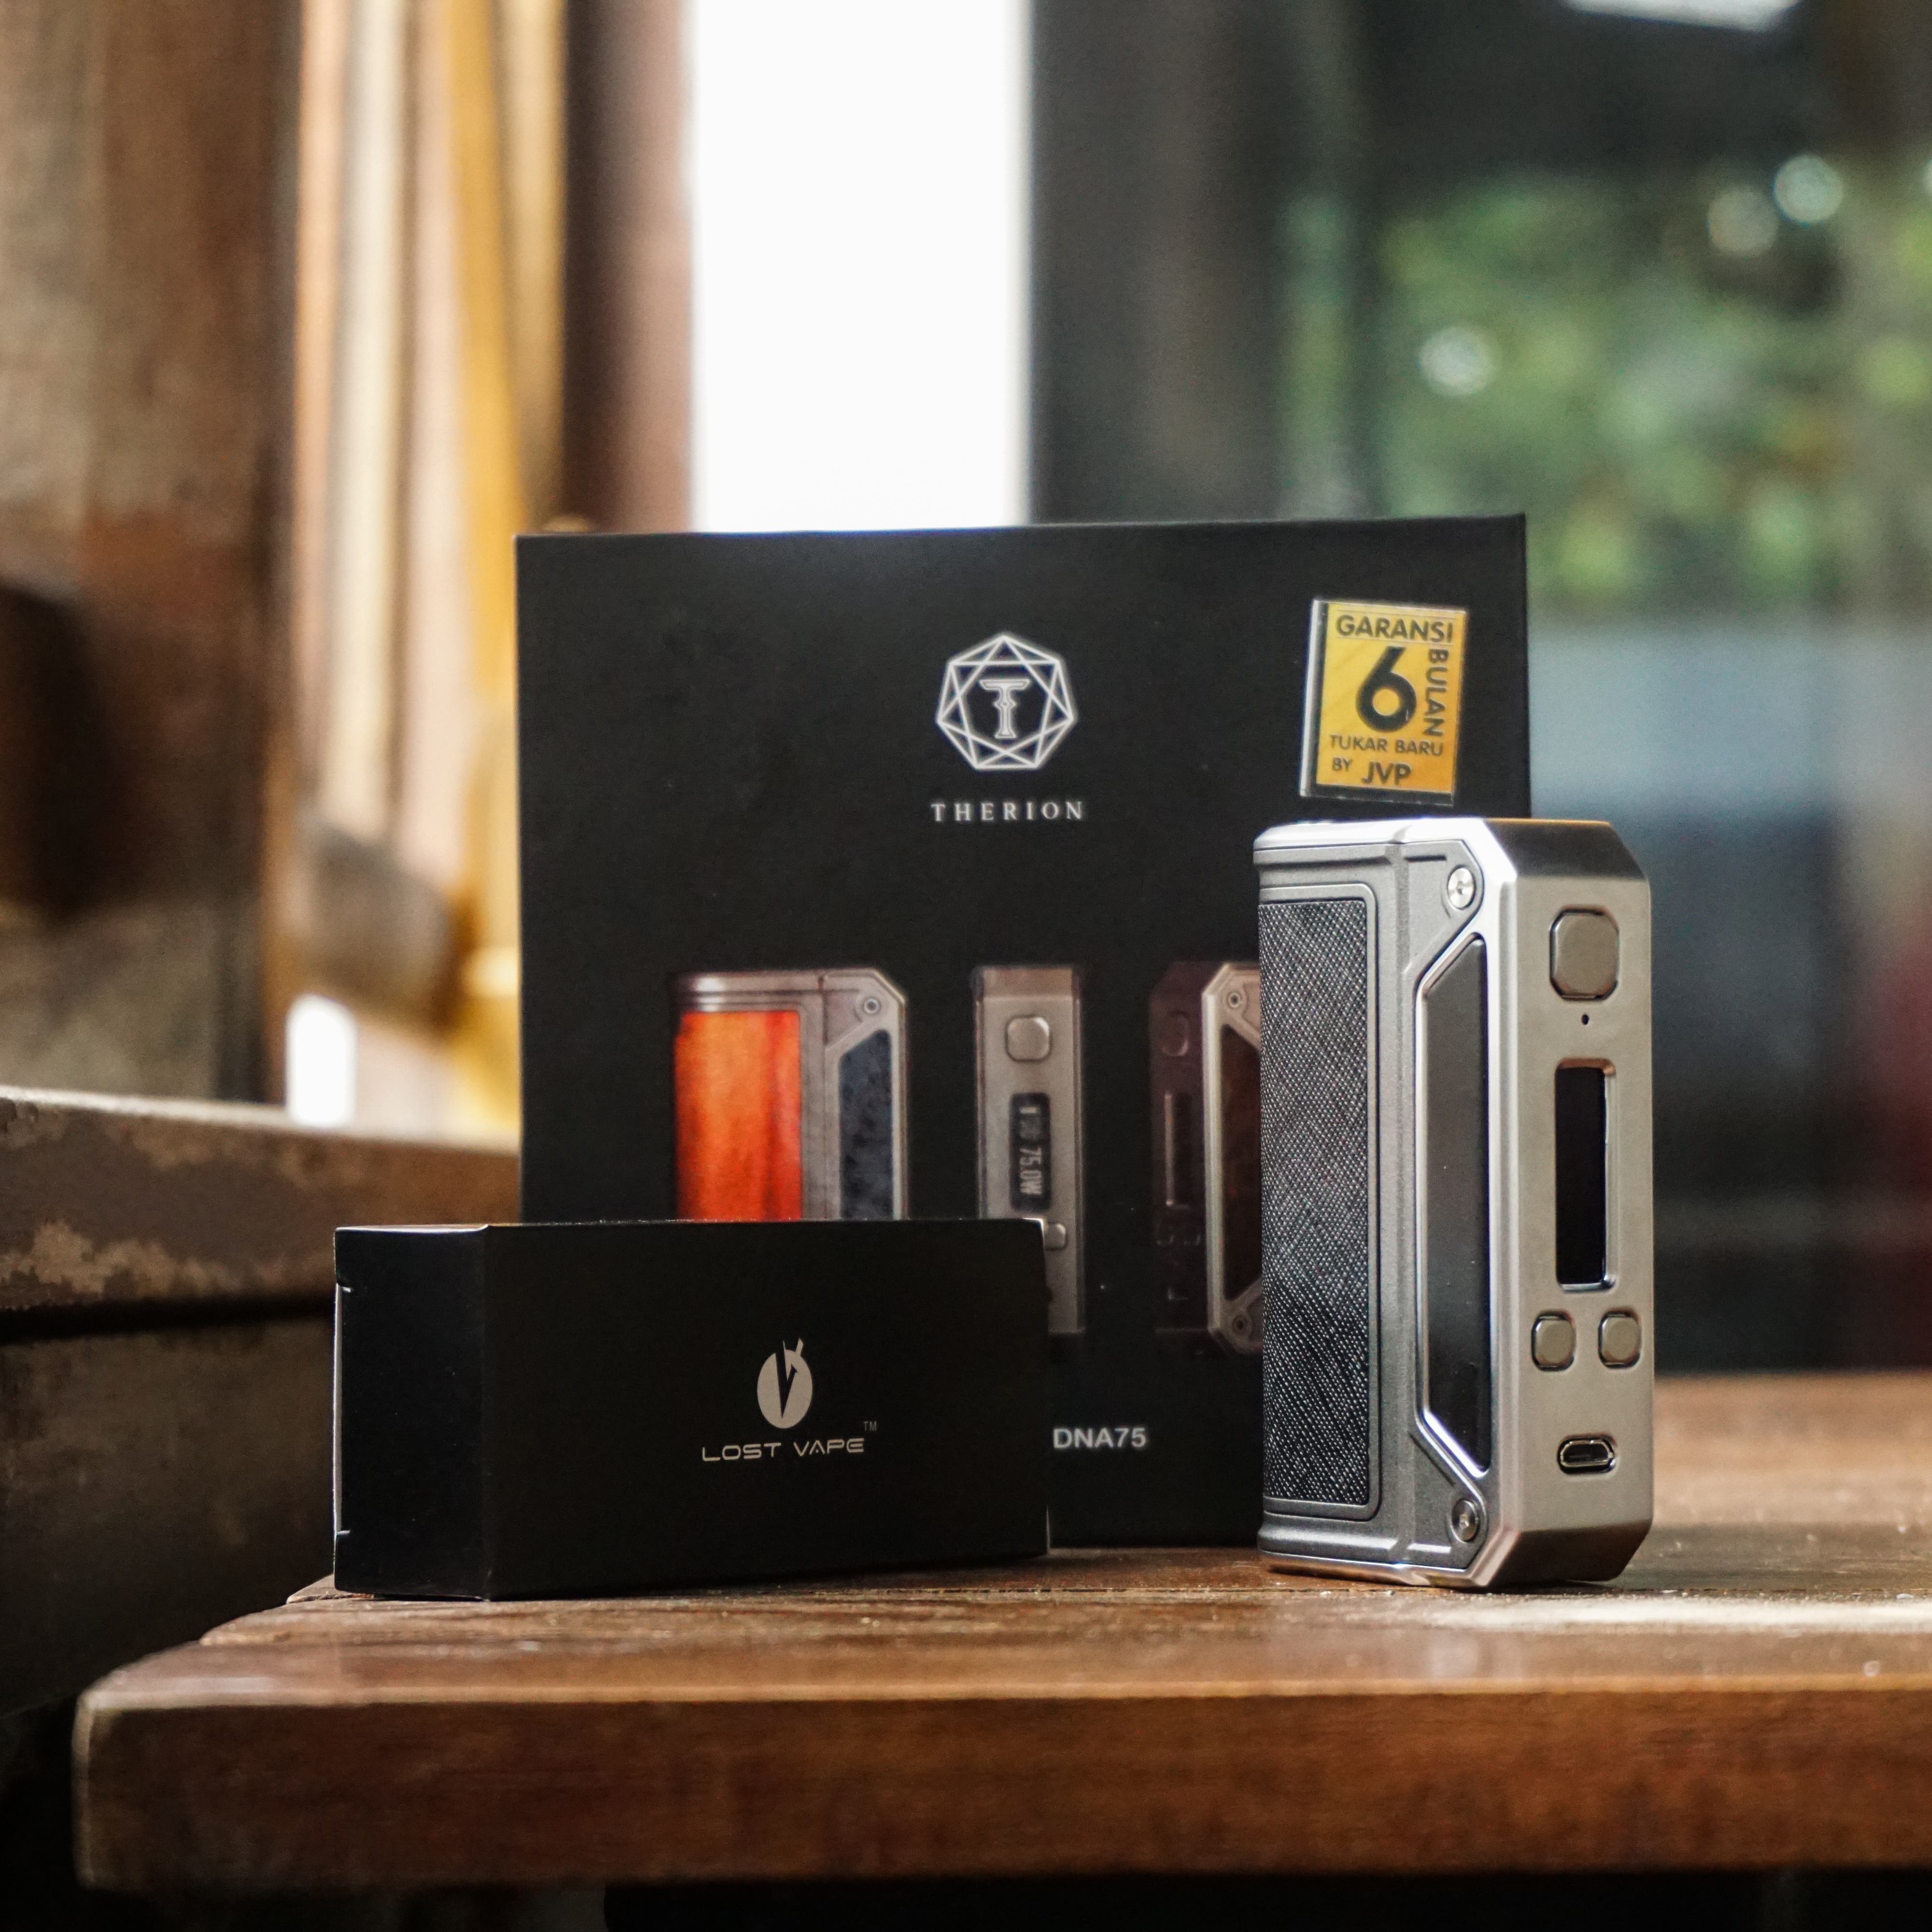 lost vaoe therion 200 upgrade firmware